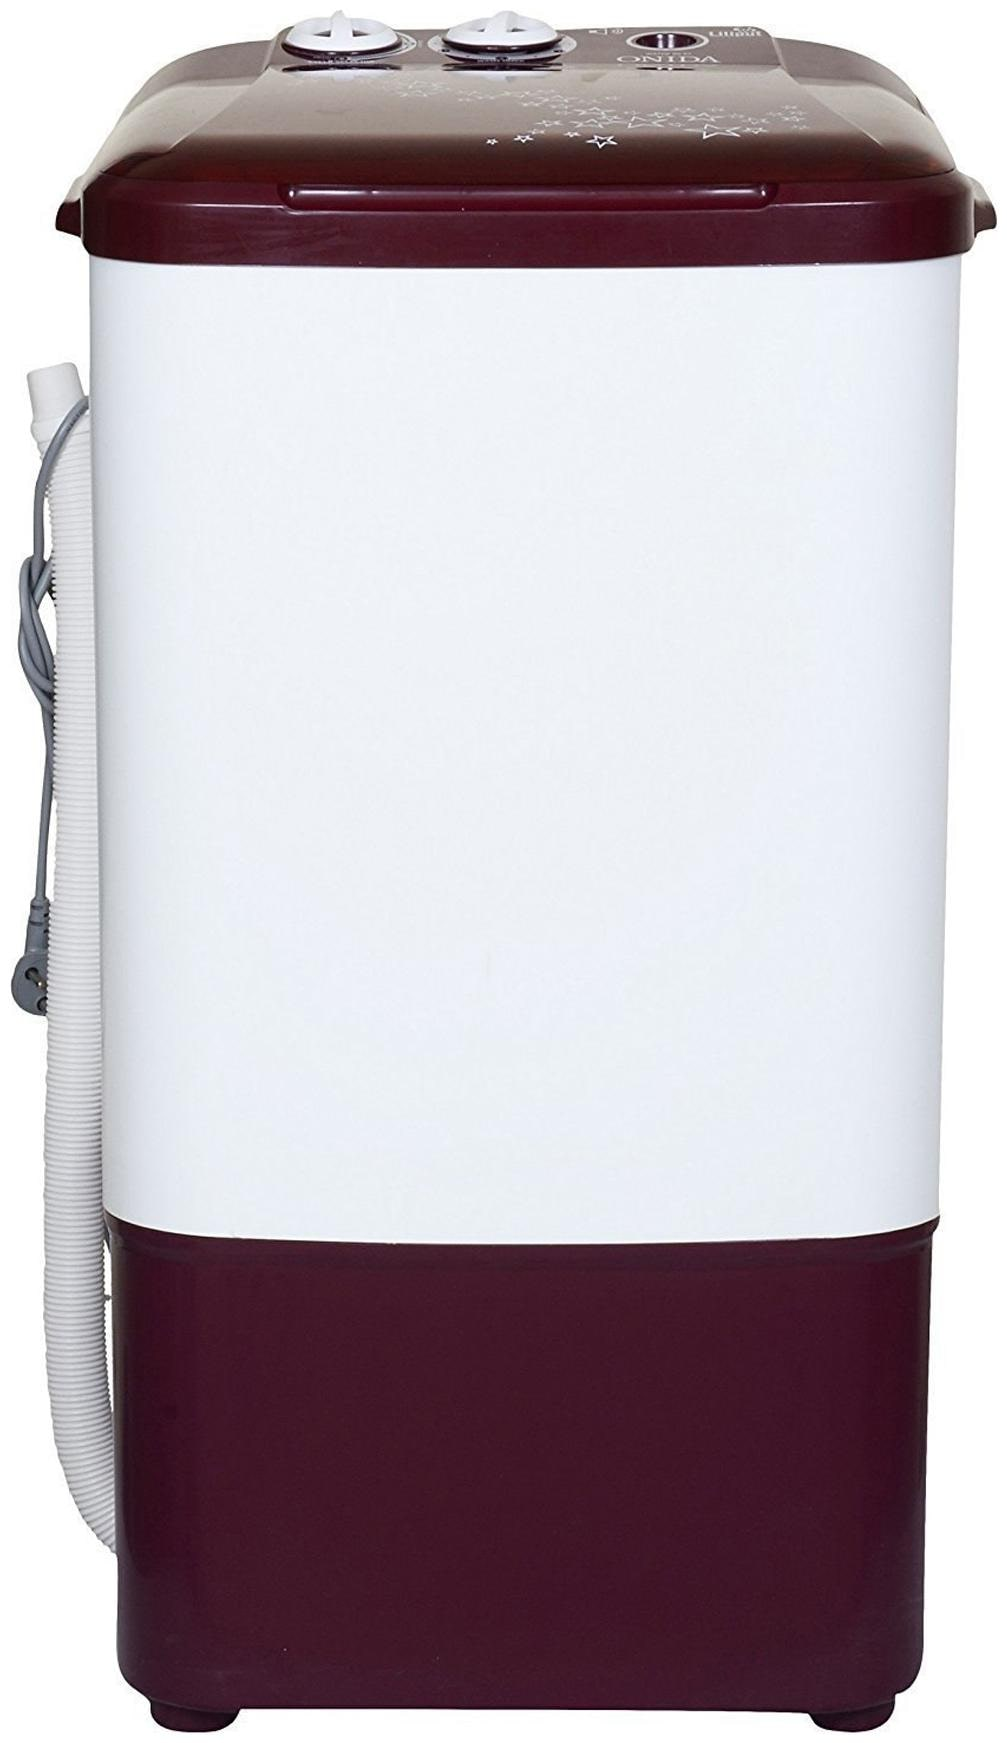 Onida 6.5 kg Semi Automatic Top Load Washer only   WS65WLPT1LR LILIPUT , Lava red